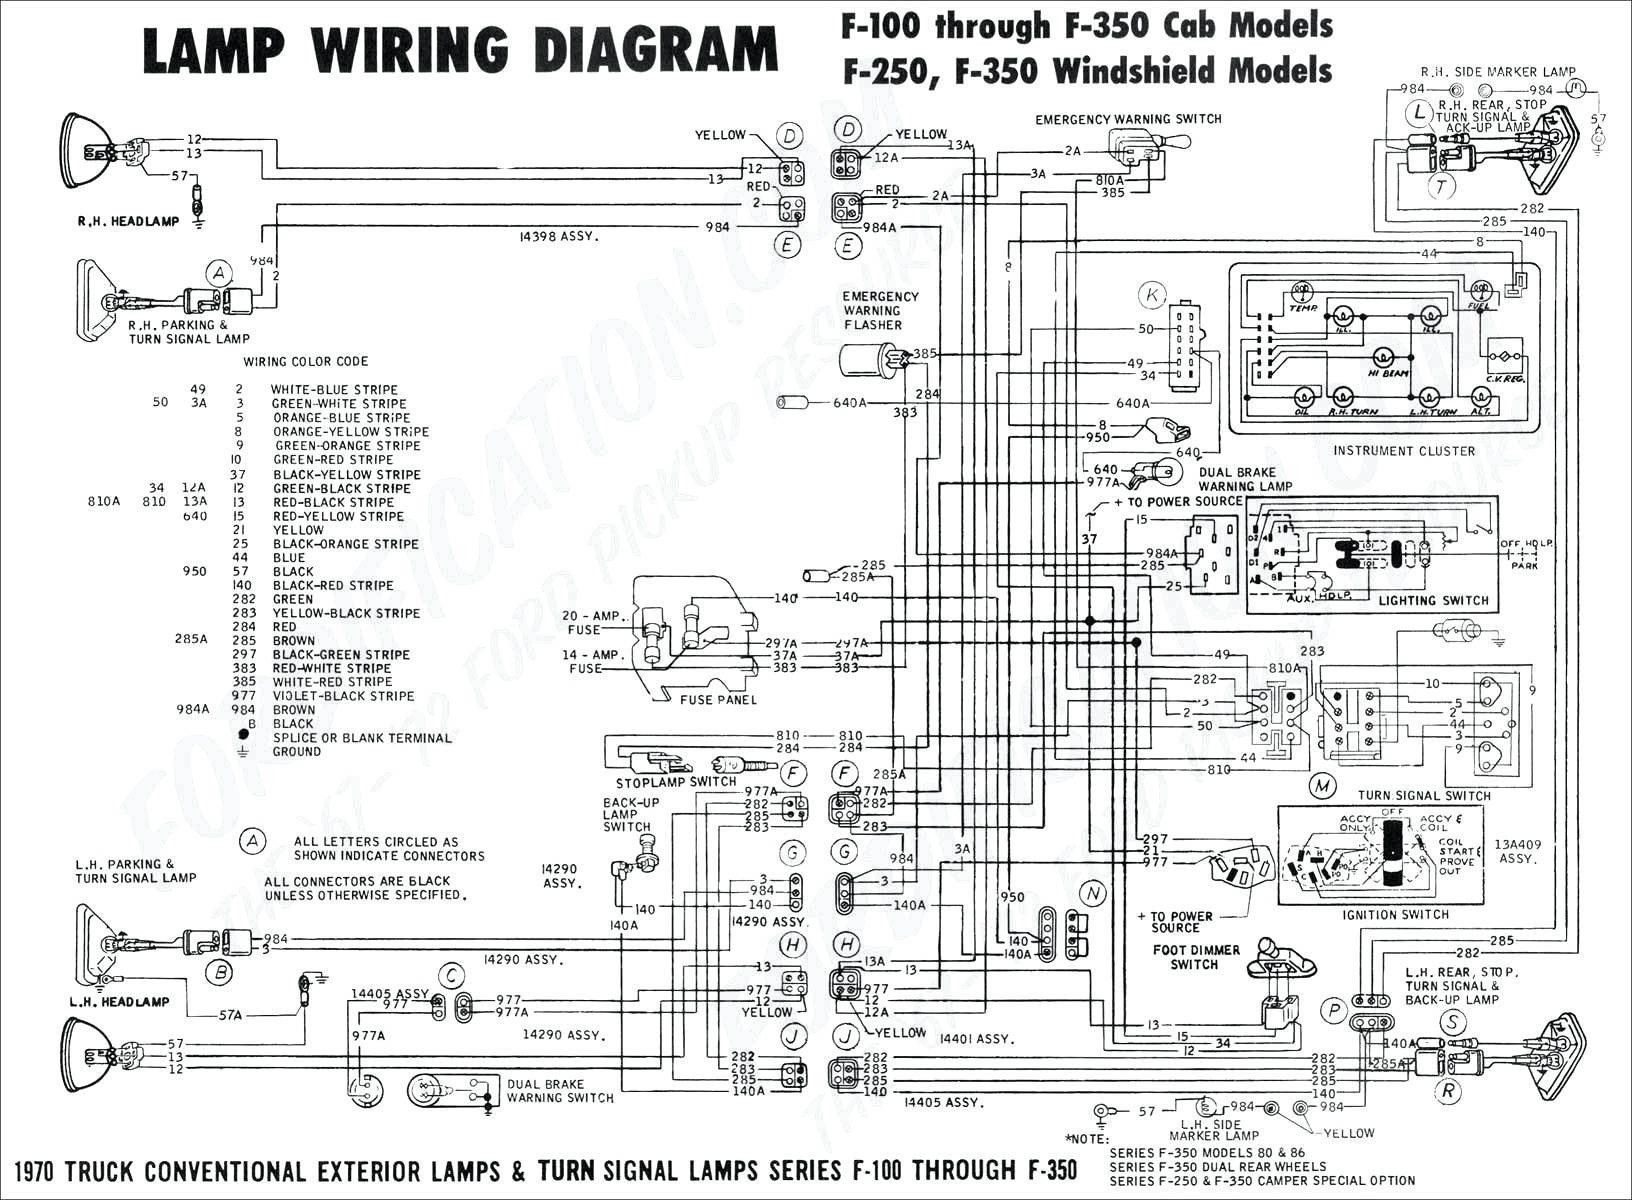 2006 Chevy Silverado Trailer Wiring Diagram New 2005 Dodge Ram 1500 Trailer Wiring Diagram Inspirationa 2005 Chevy